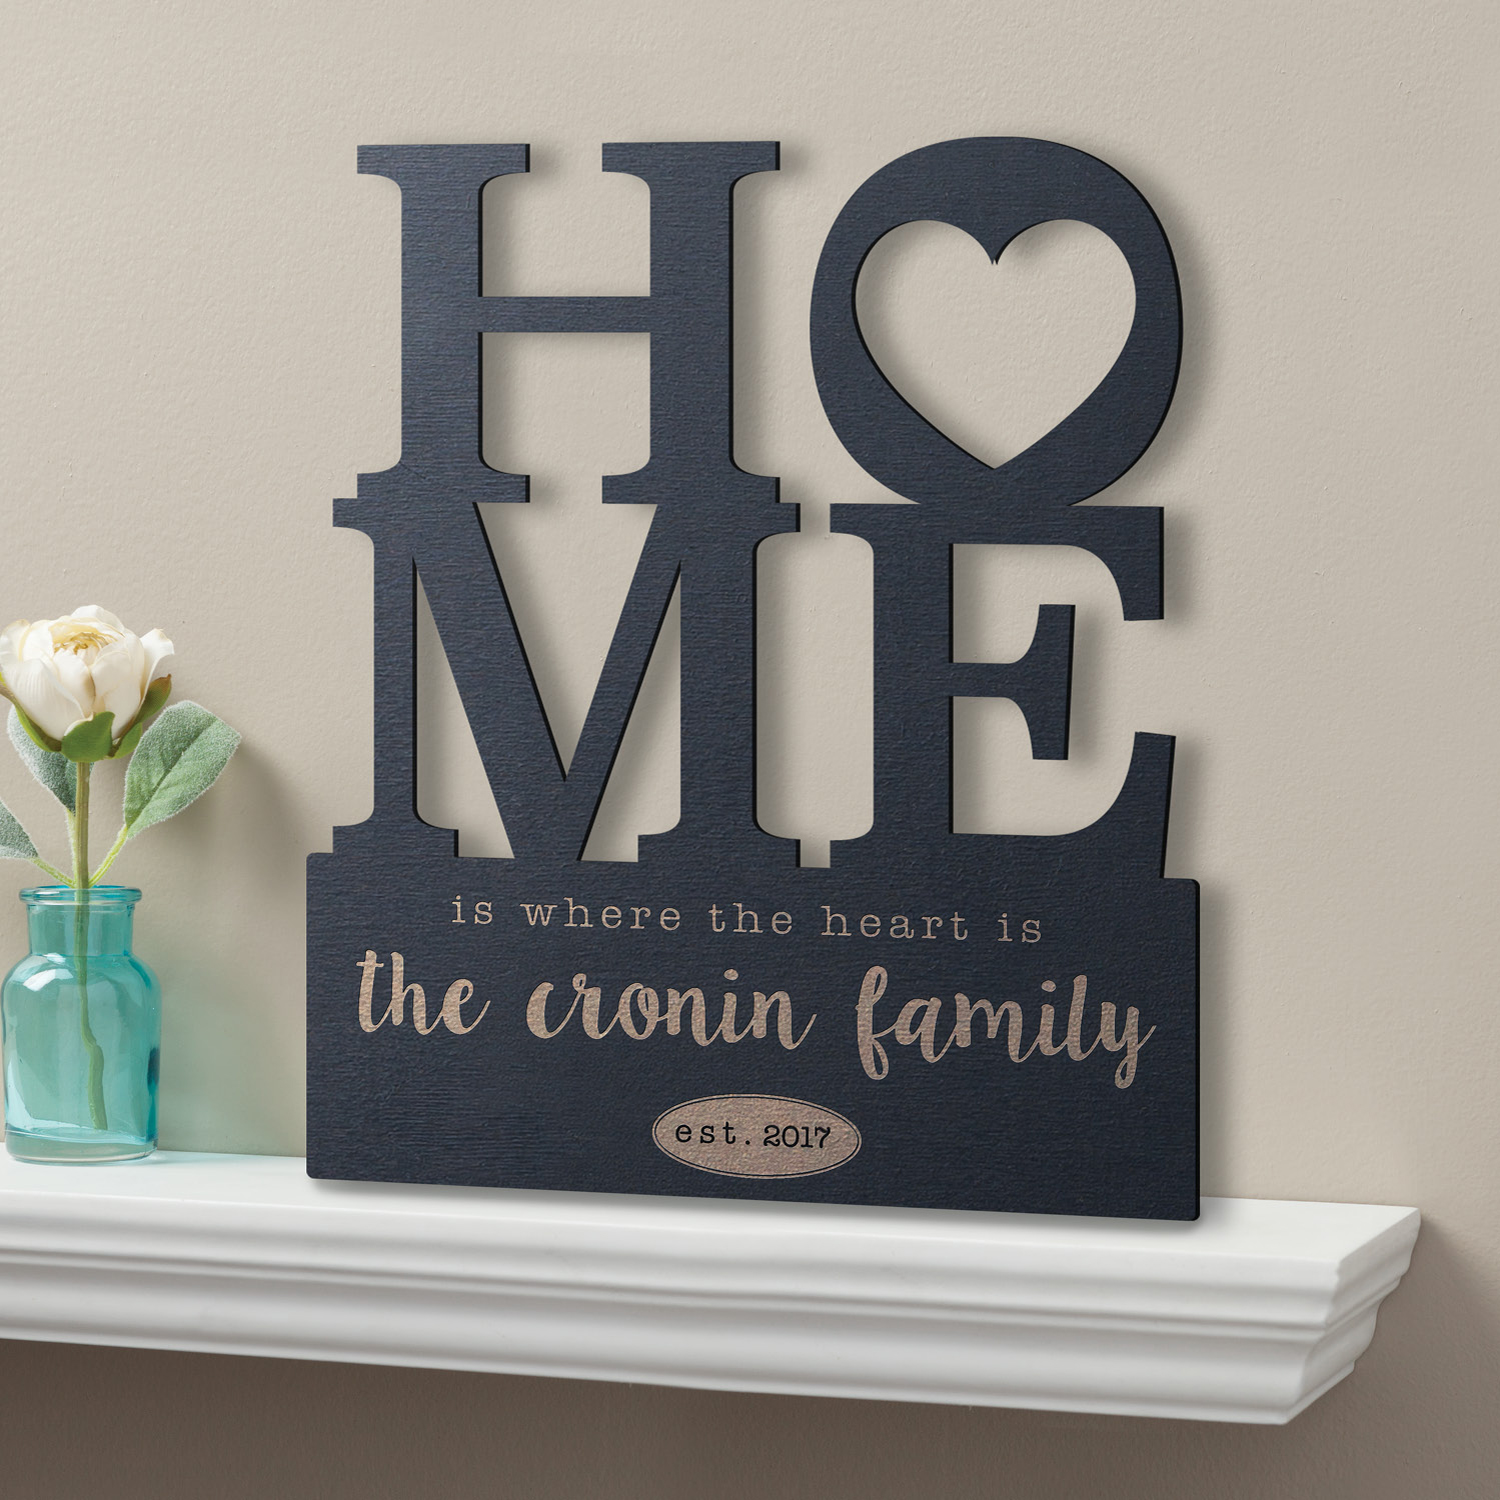 Personalized Black Wood Plaque - Home Is Where The Heart Is